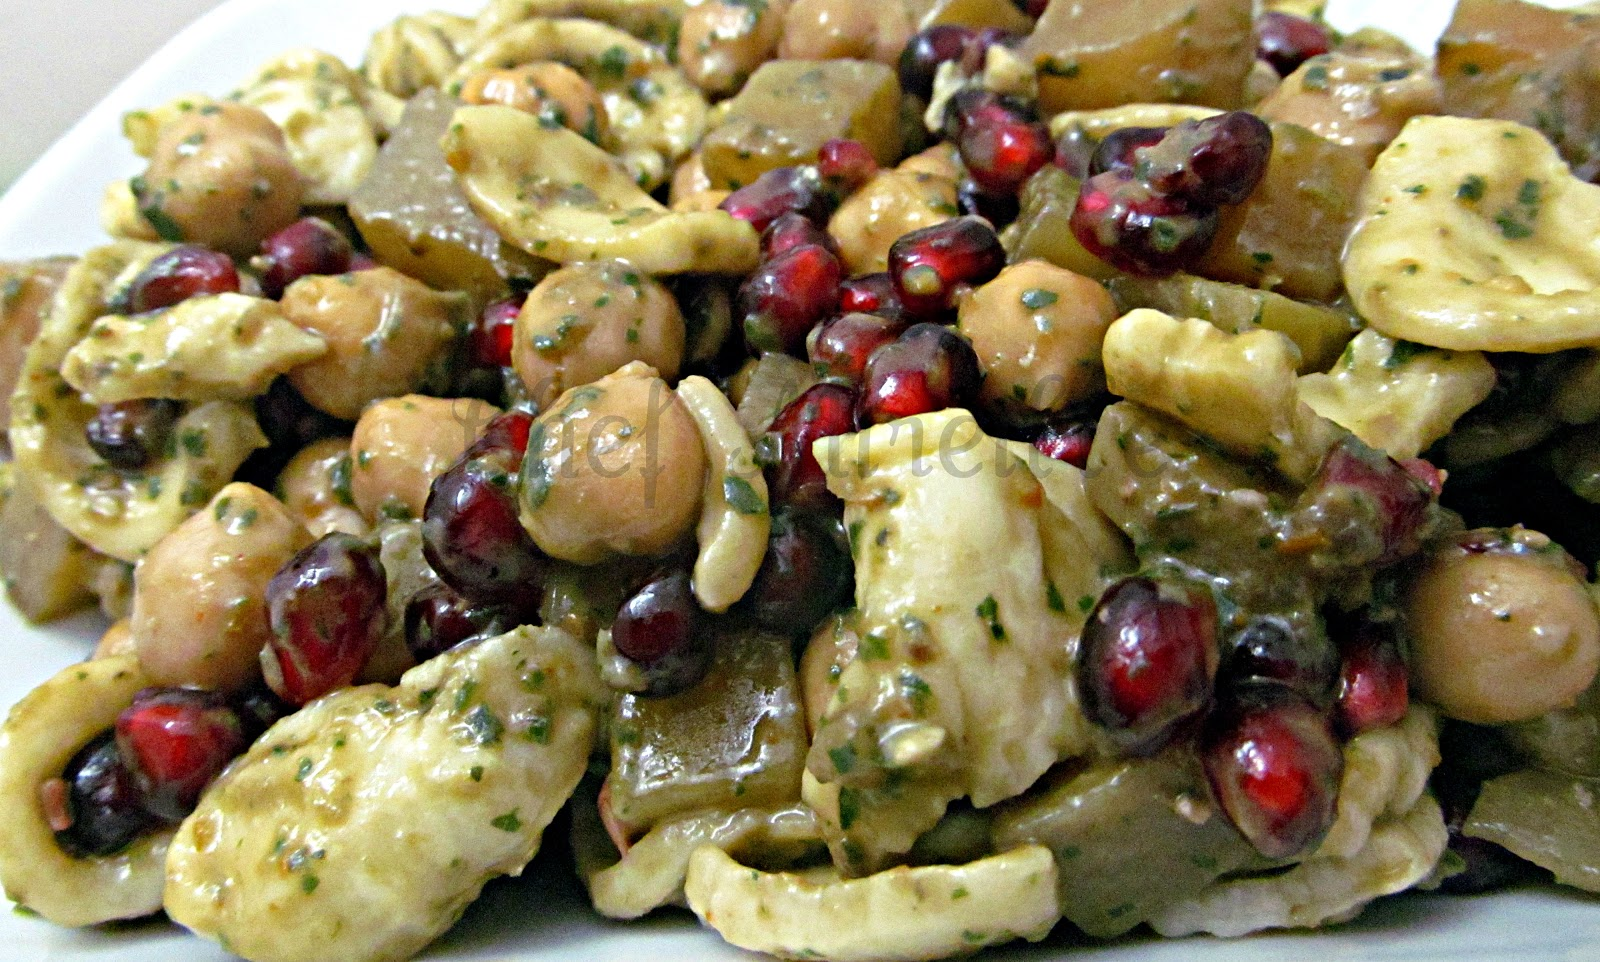 ... rich pasta or potato salads here is a twist on traditional pasta salad